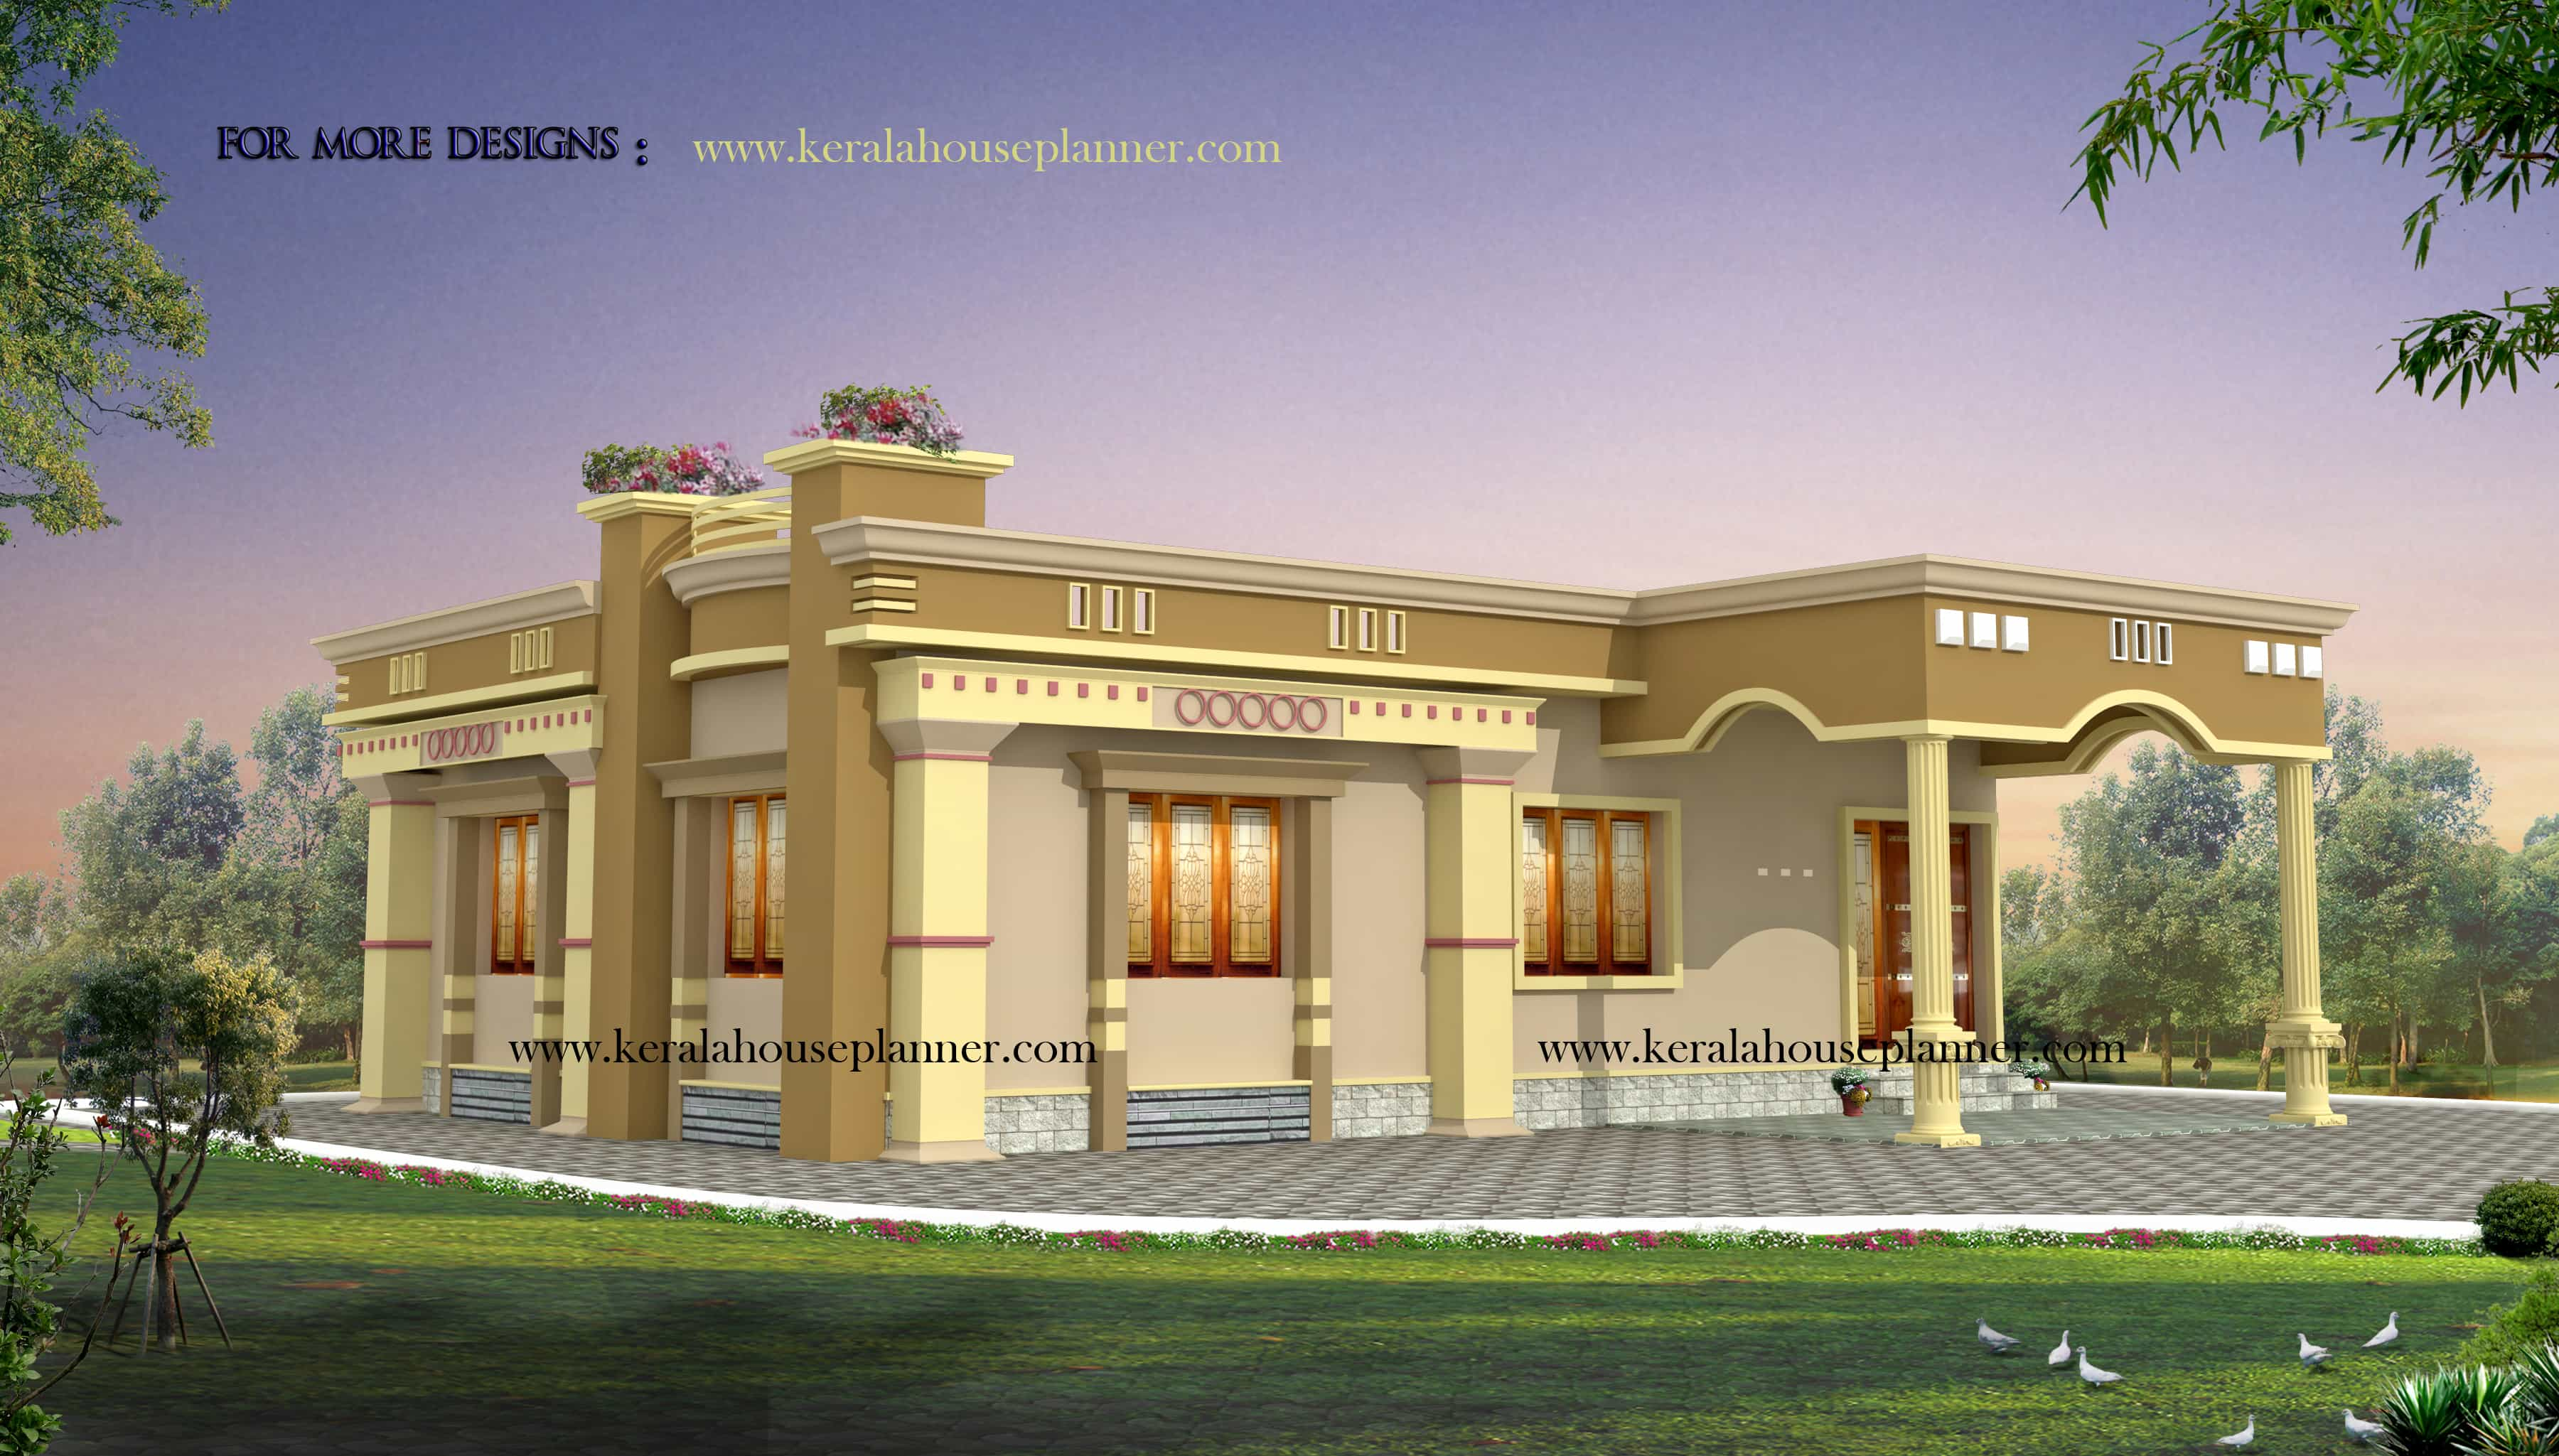 Kerala house plans 1200 sq ft with photos khp for Kerala houses designs